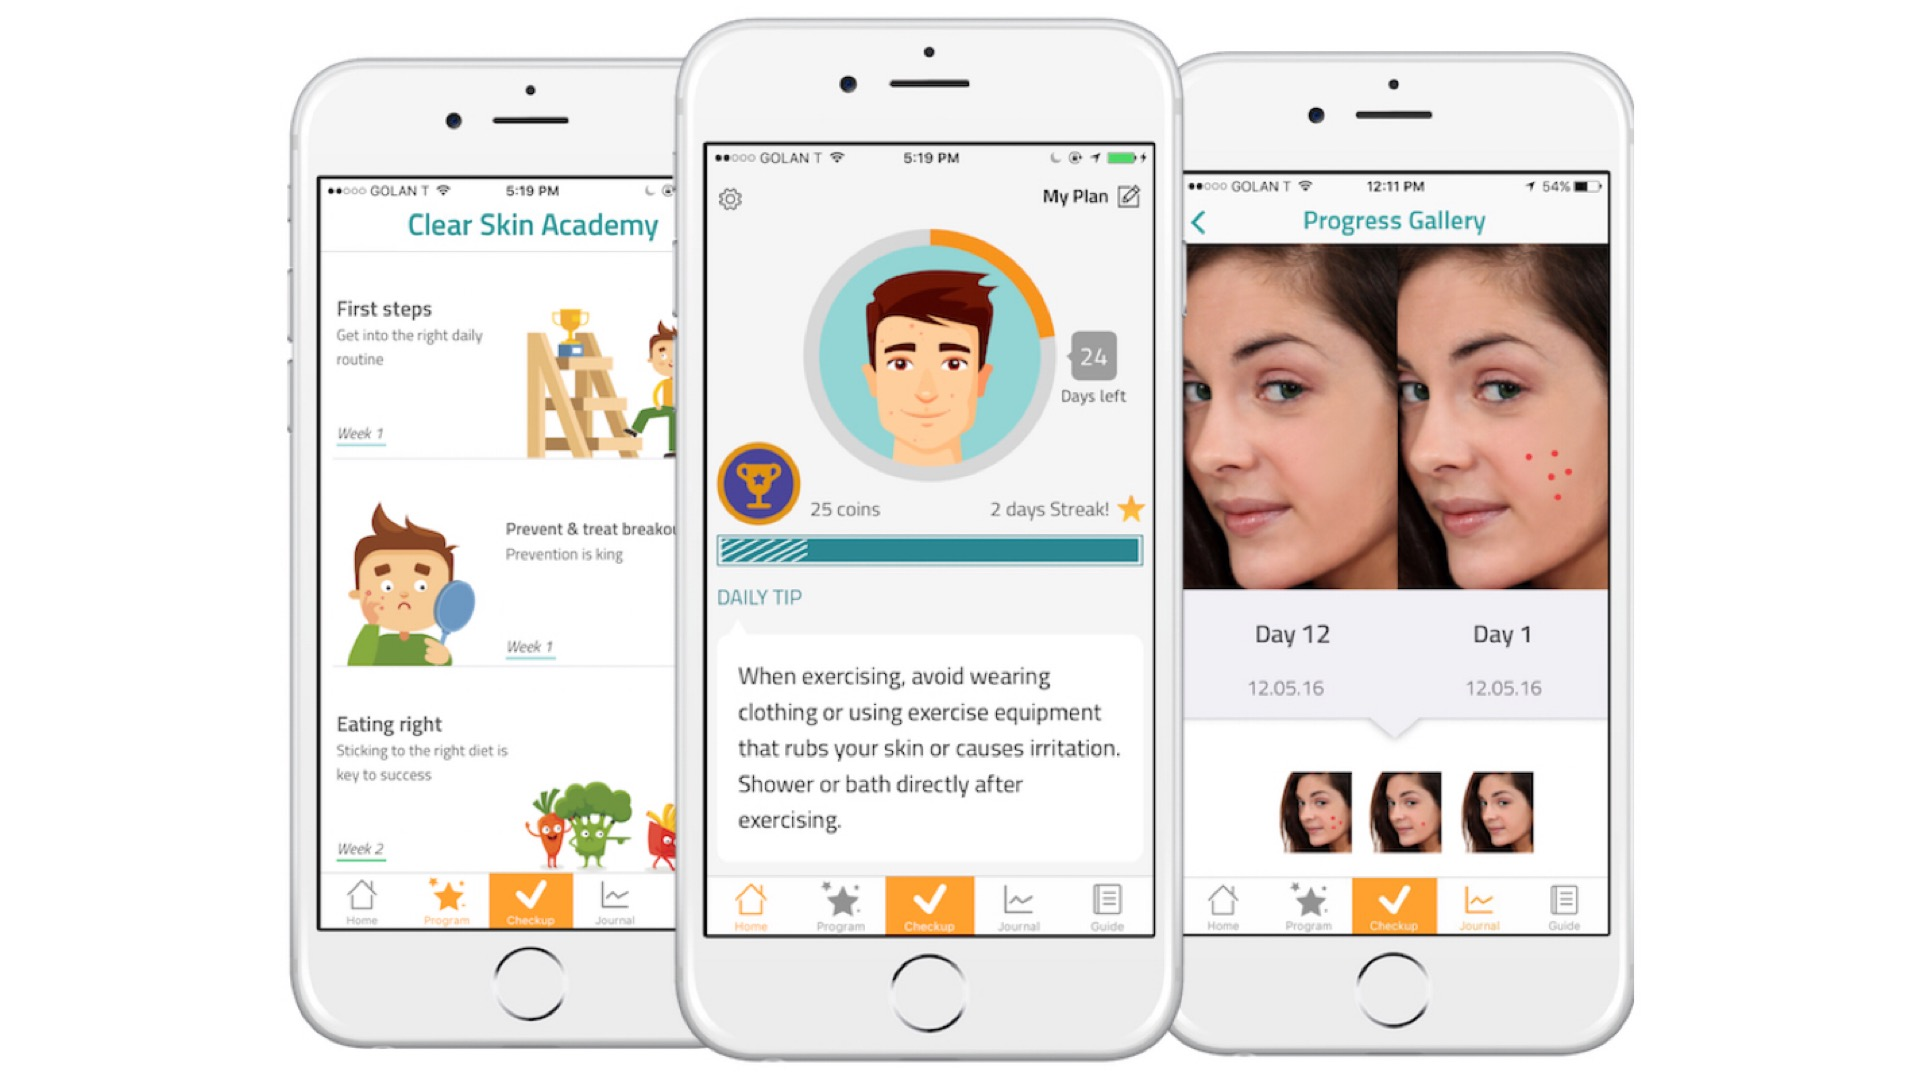 MDacne iPhone App Assists Monitoring and Treatment of Acne